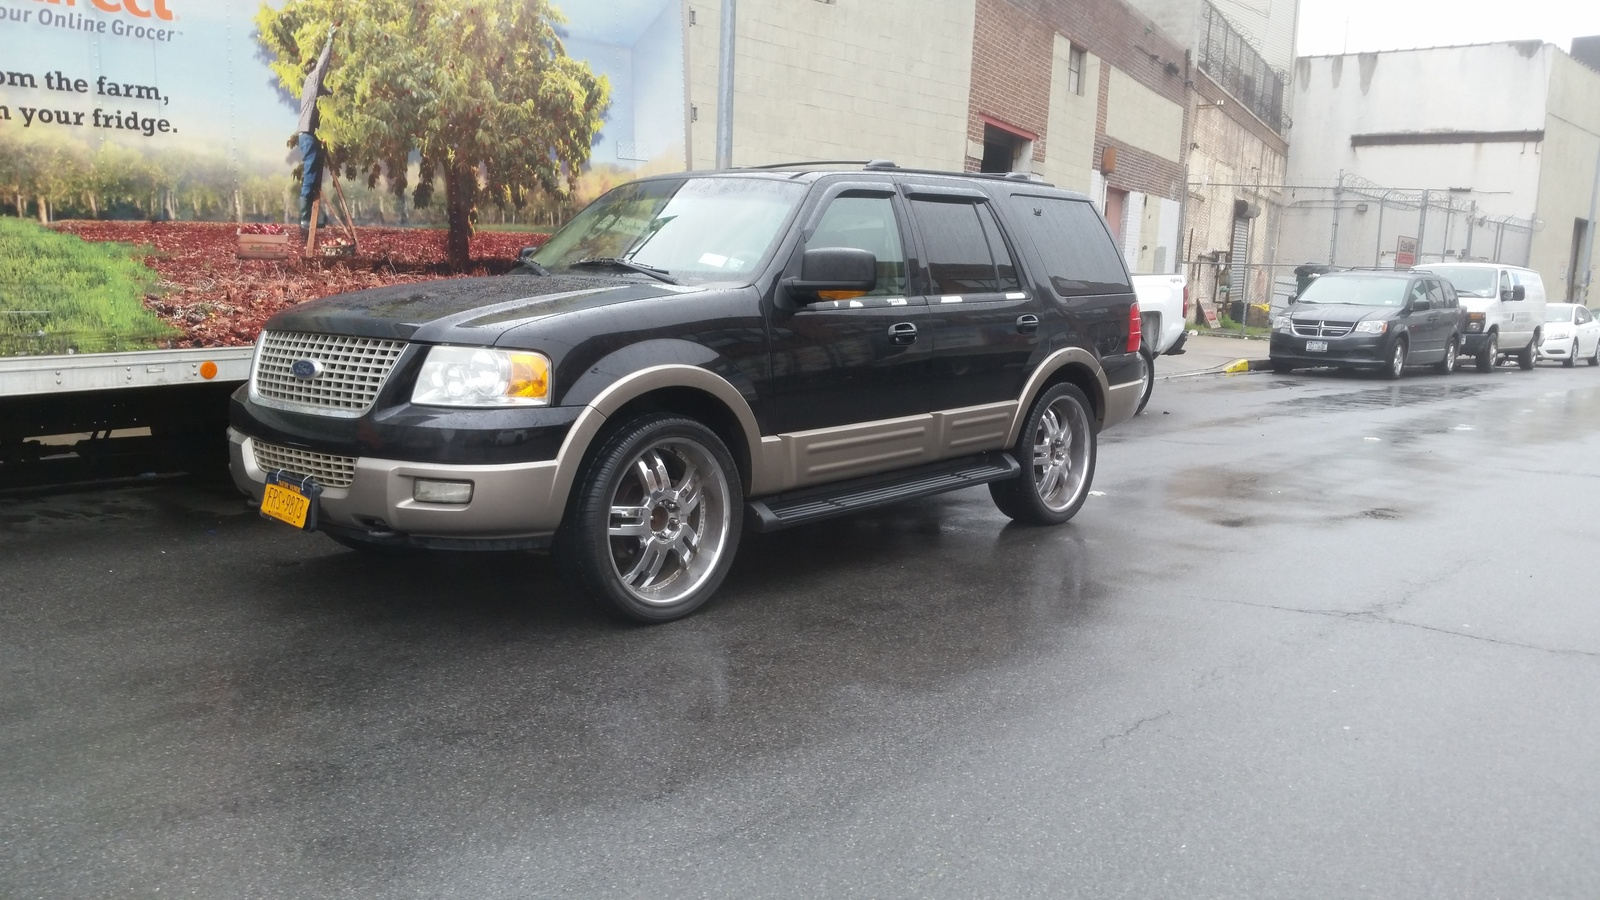 ford expedition questions 24 inch rims cargurus ford expedition questions 24 inch